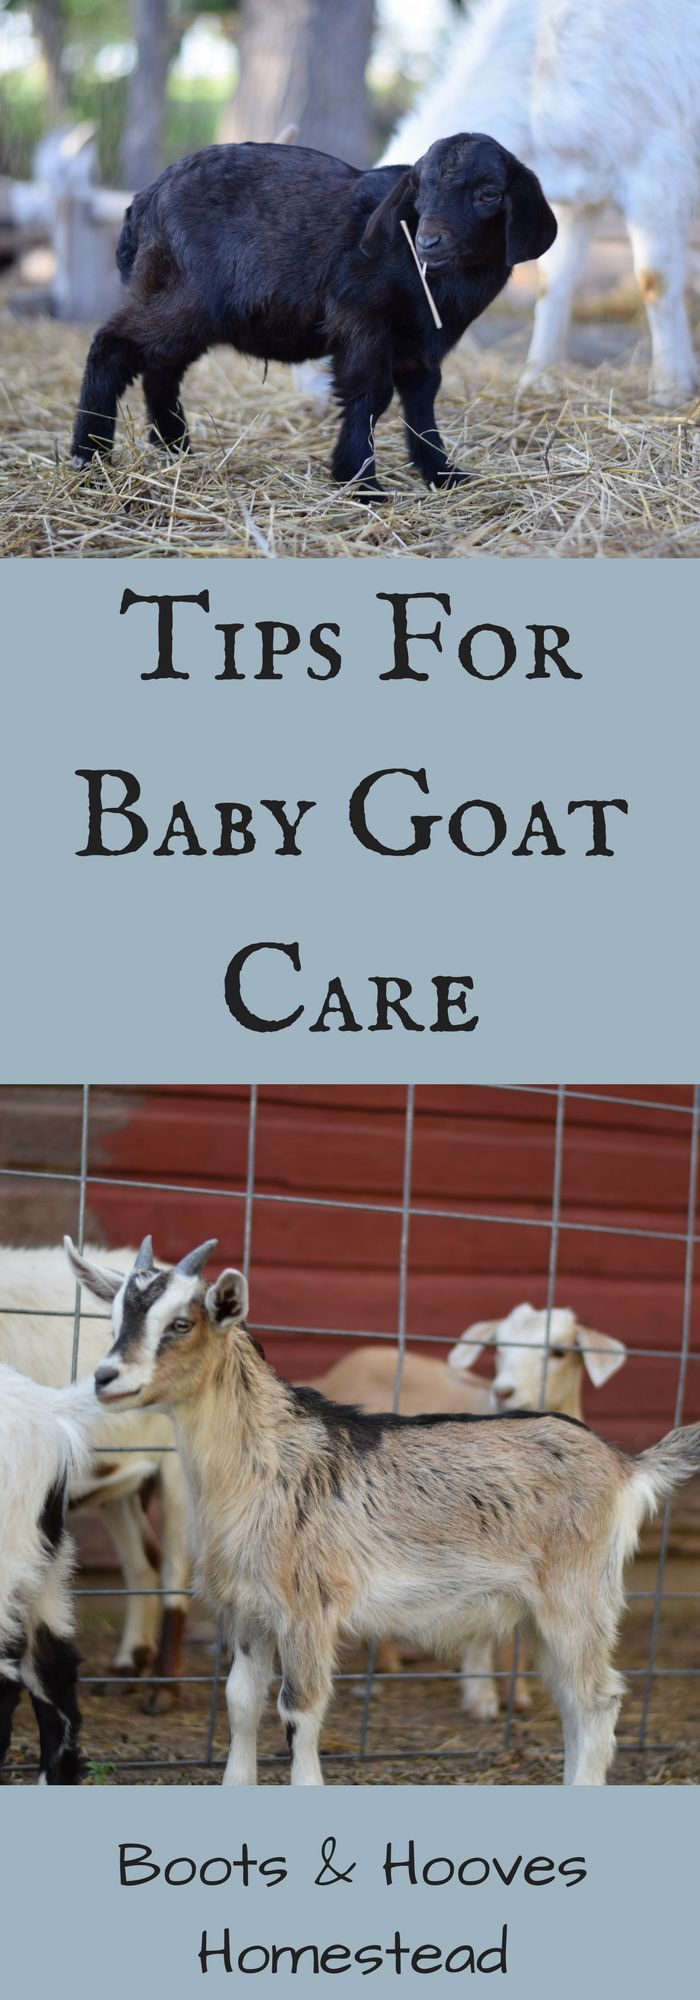 how to take care of a baby goat